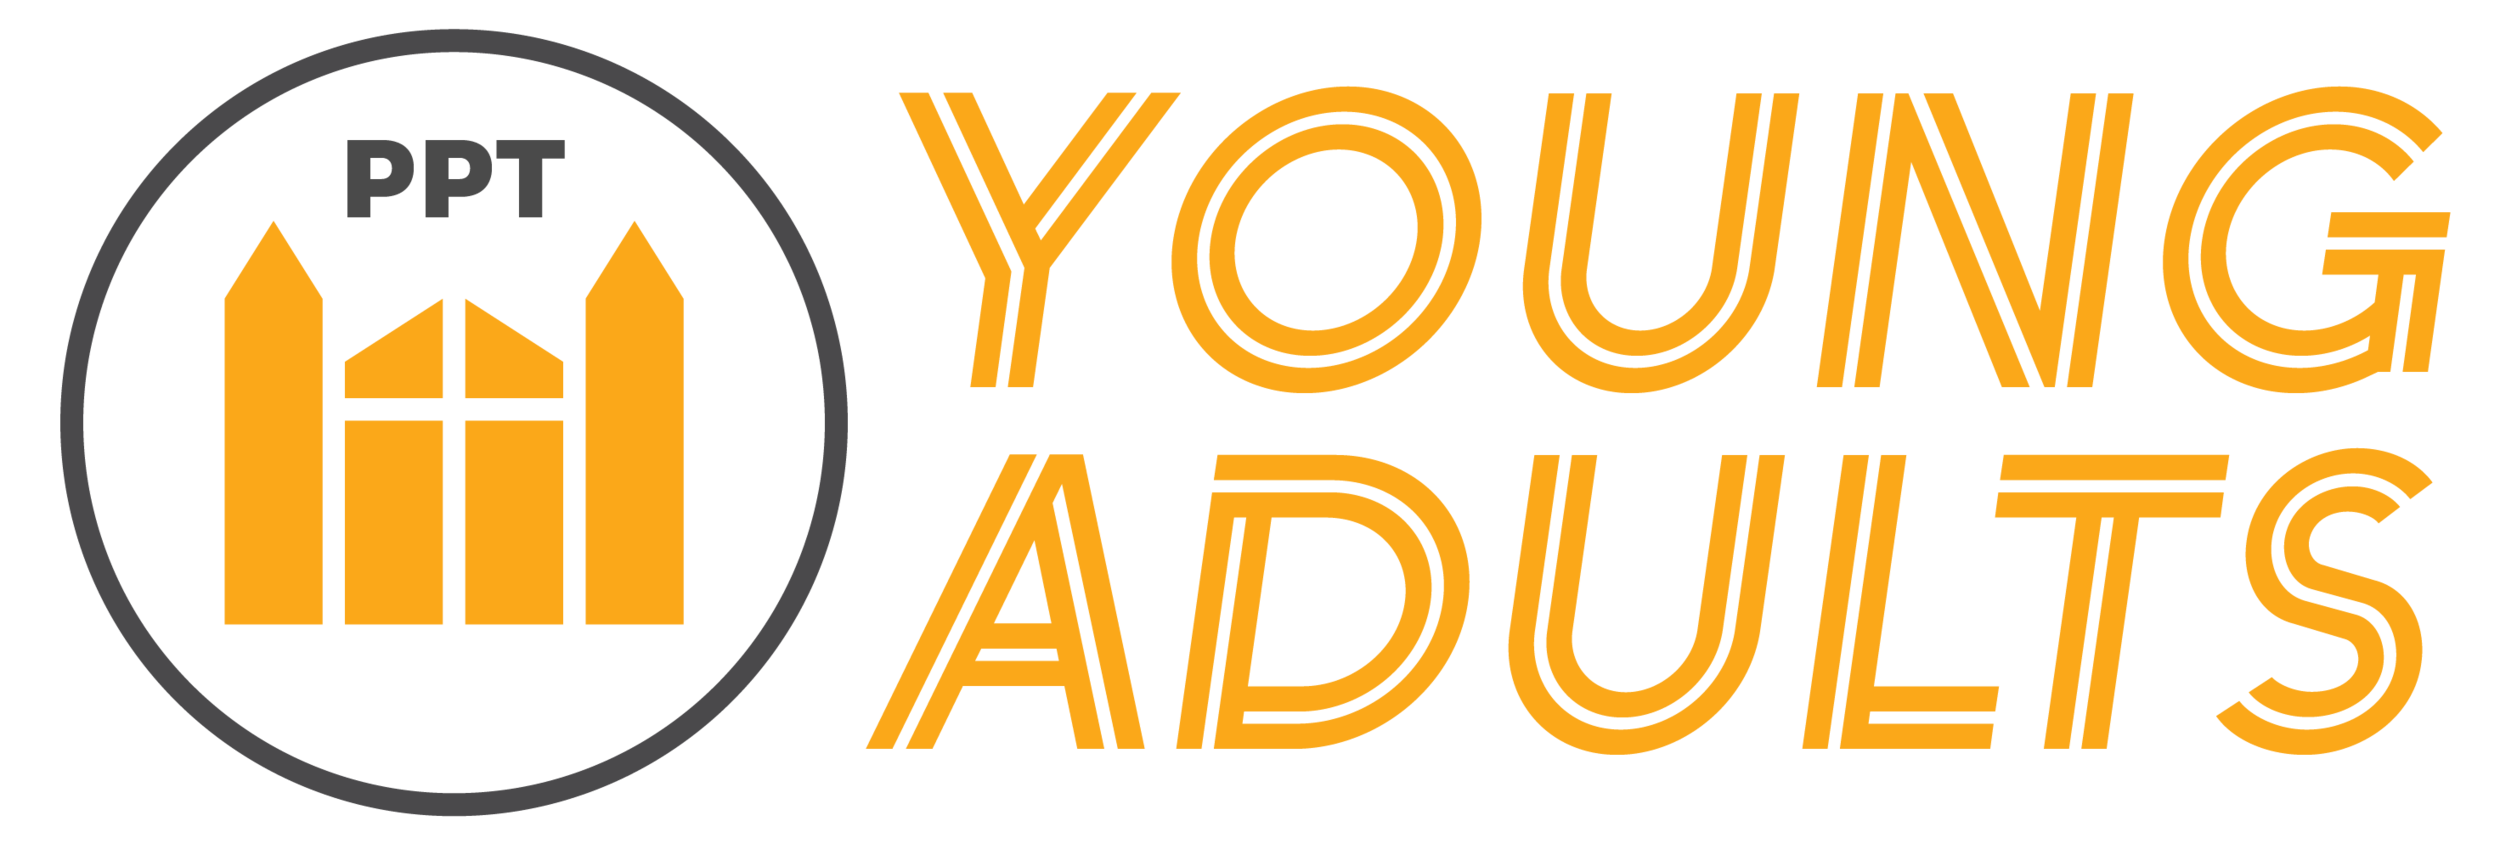 PPT Young Adults_Full Logo Colour Light.png